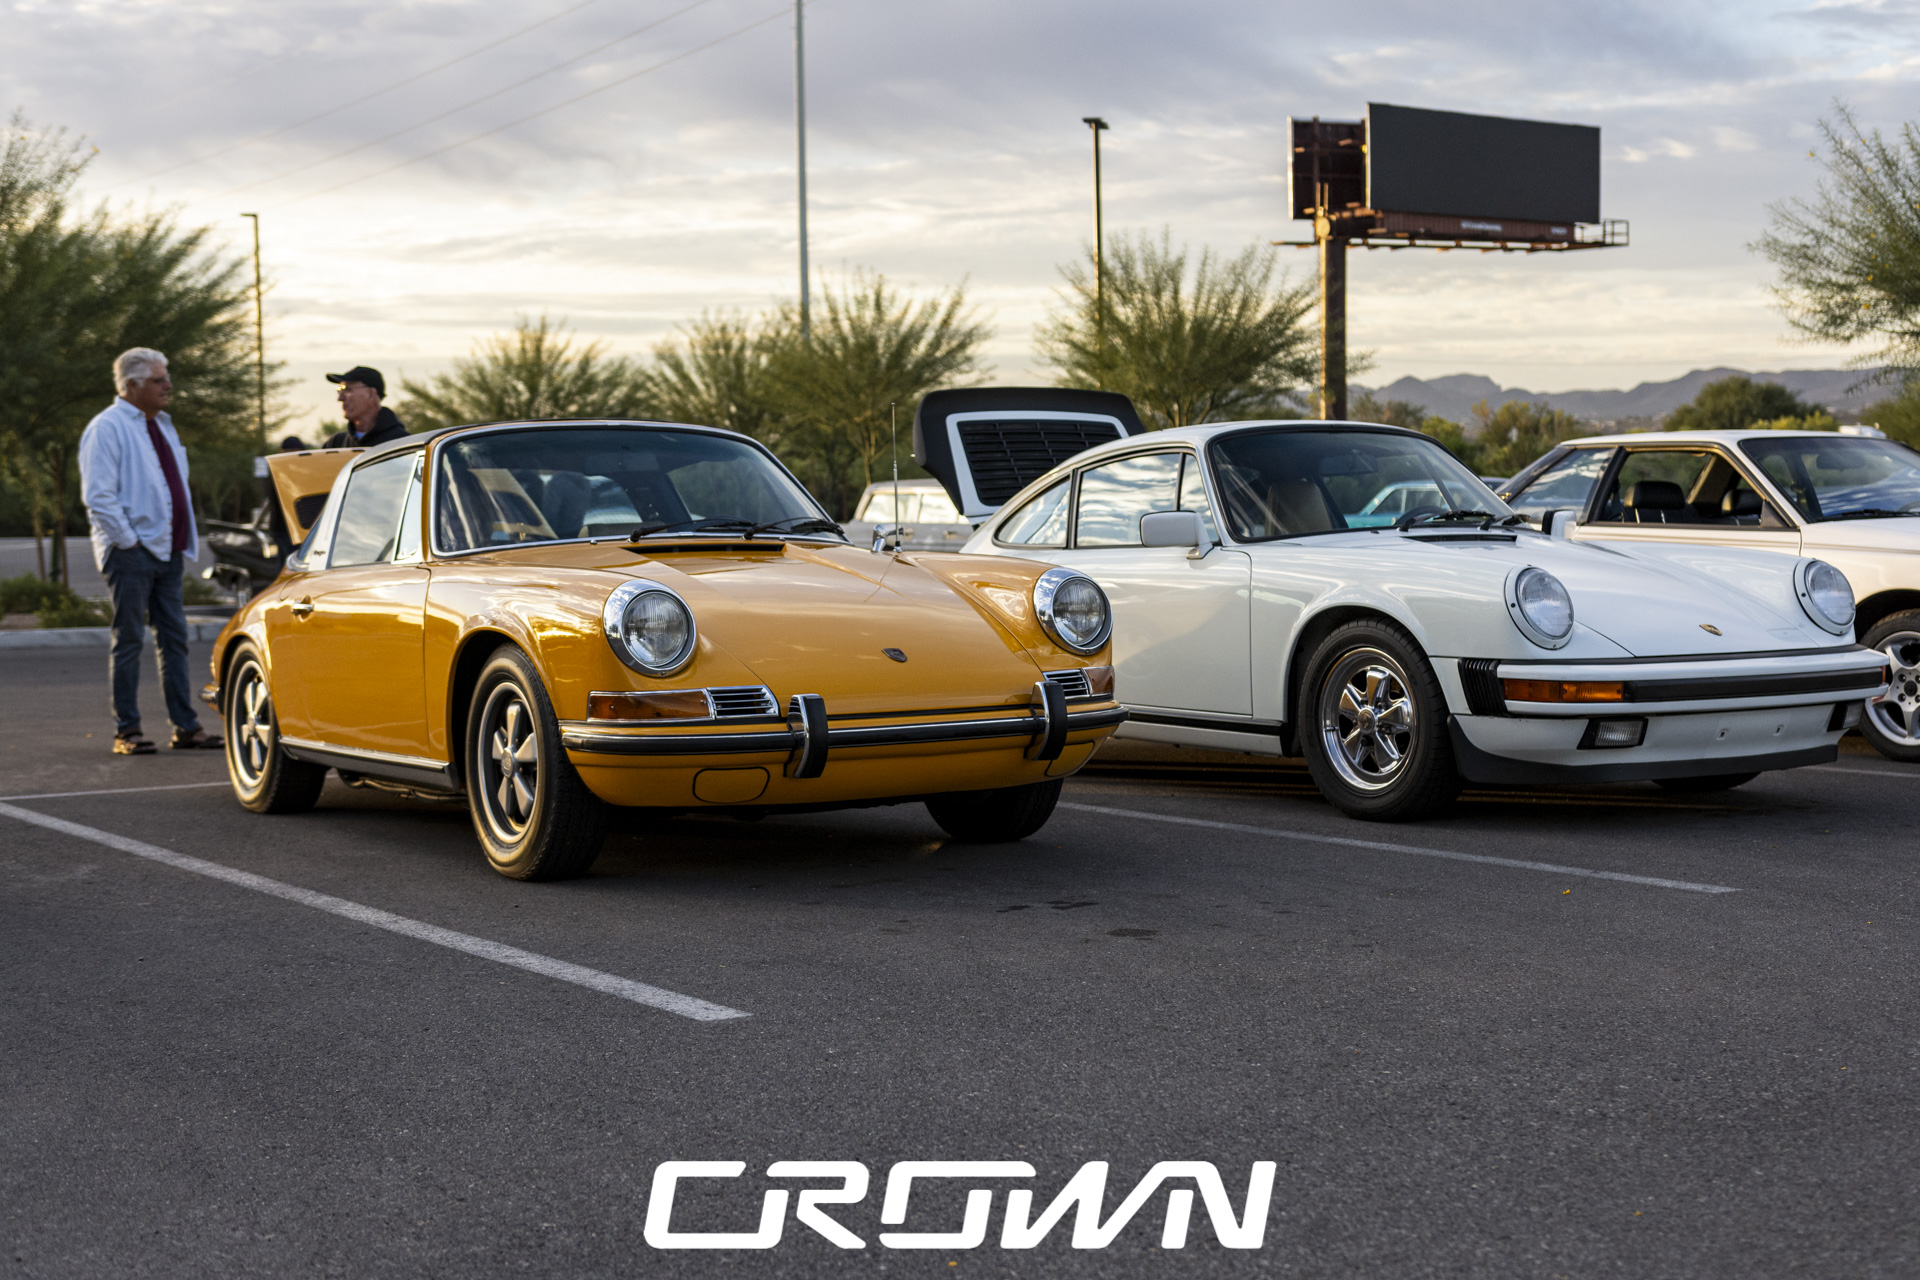 Two classic Porsche 911 parked at car show